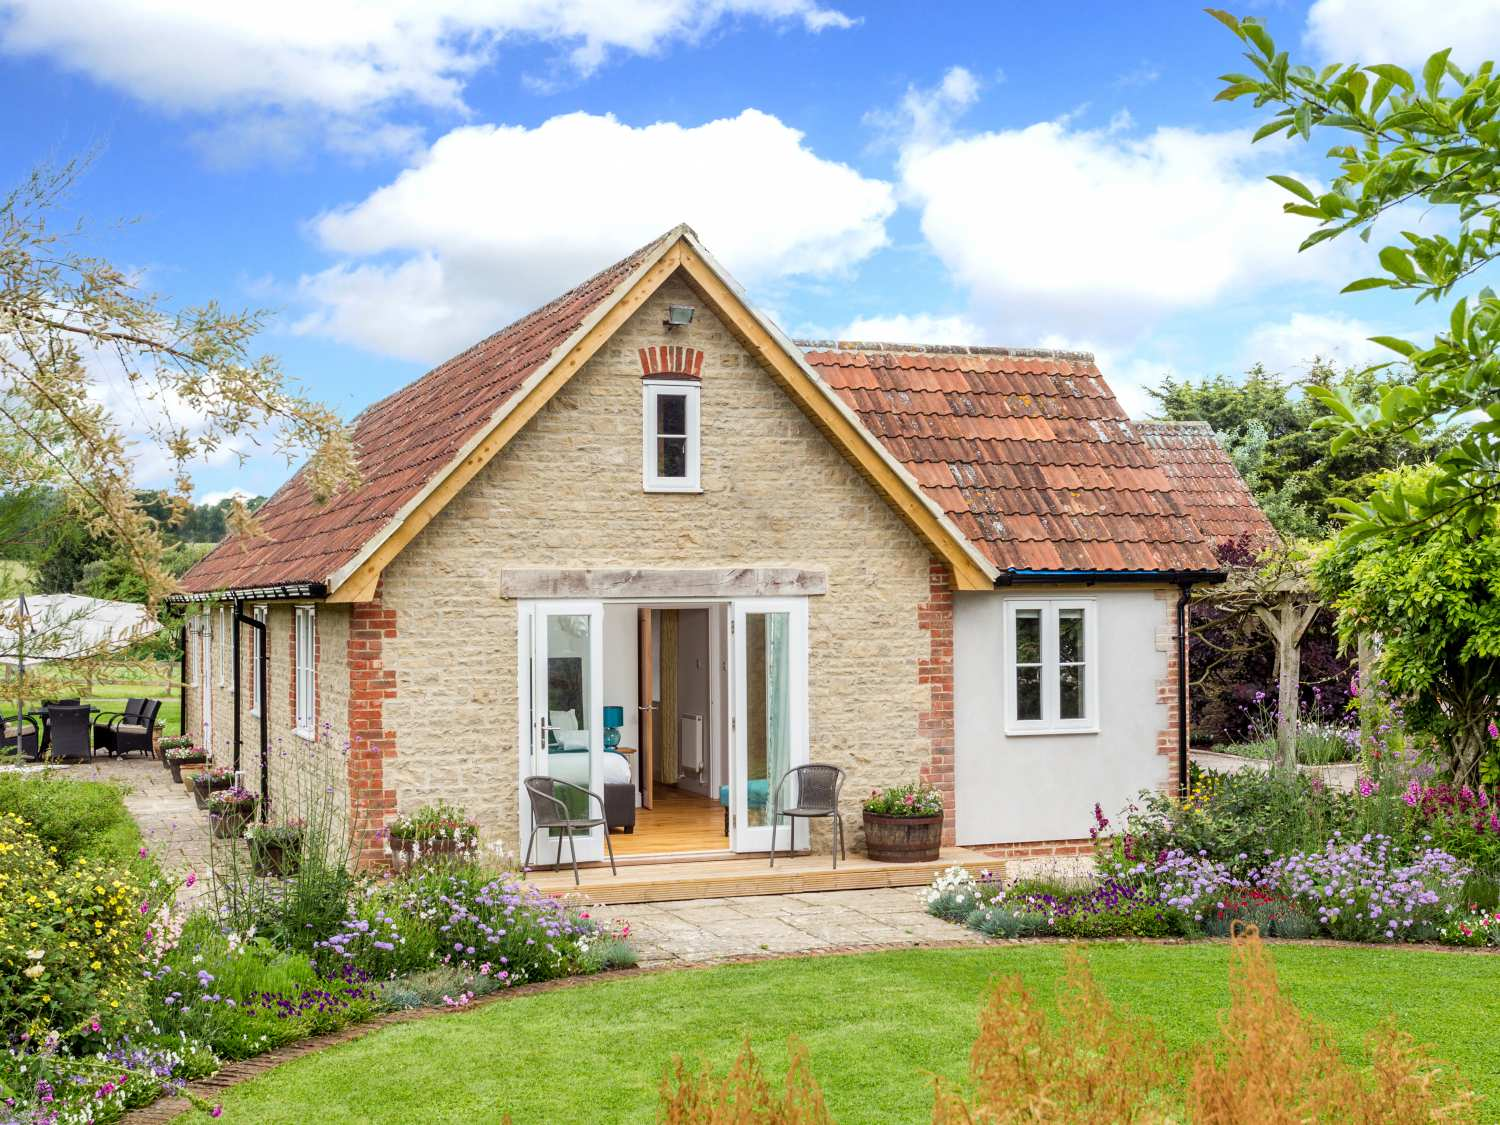 The Farm House Holiday Cottage Upper Seagry1